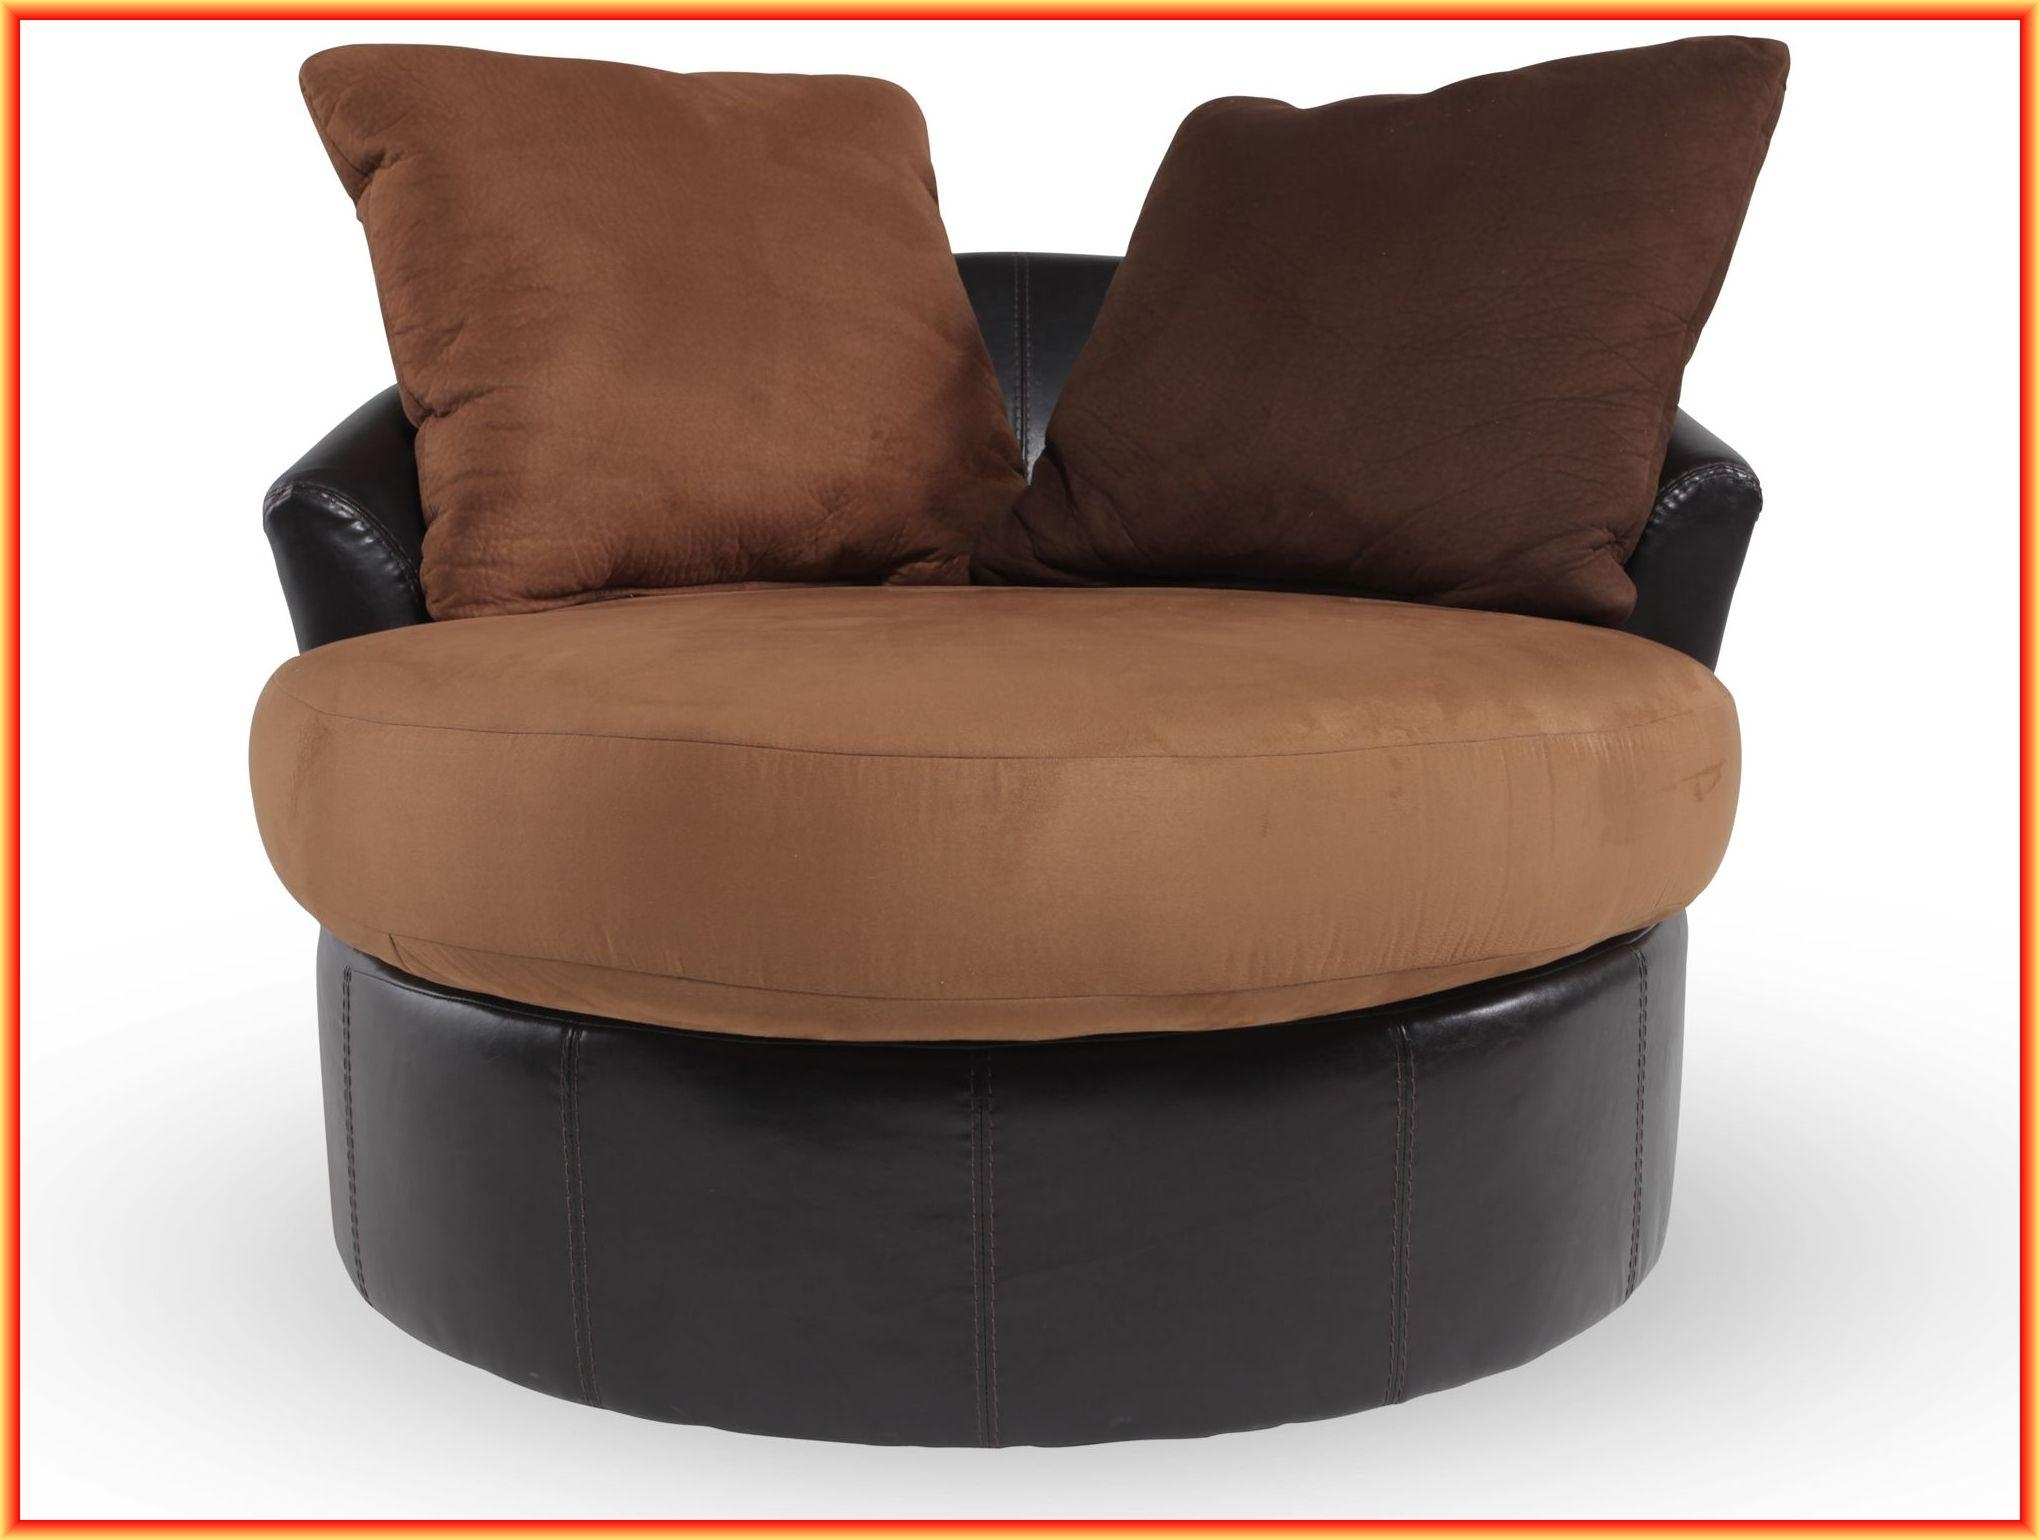 Round Swivel Chairs For Living Room For Round Sofa Chair Living Room Furniture (Image 16 of 20)